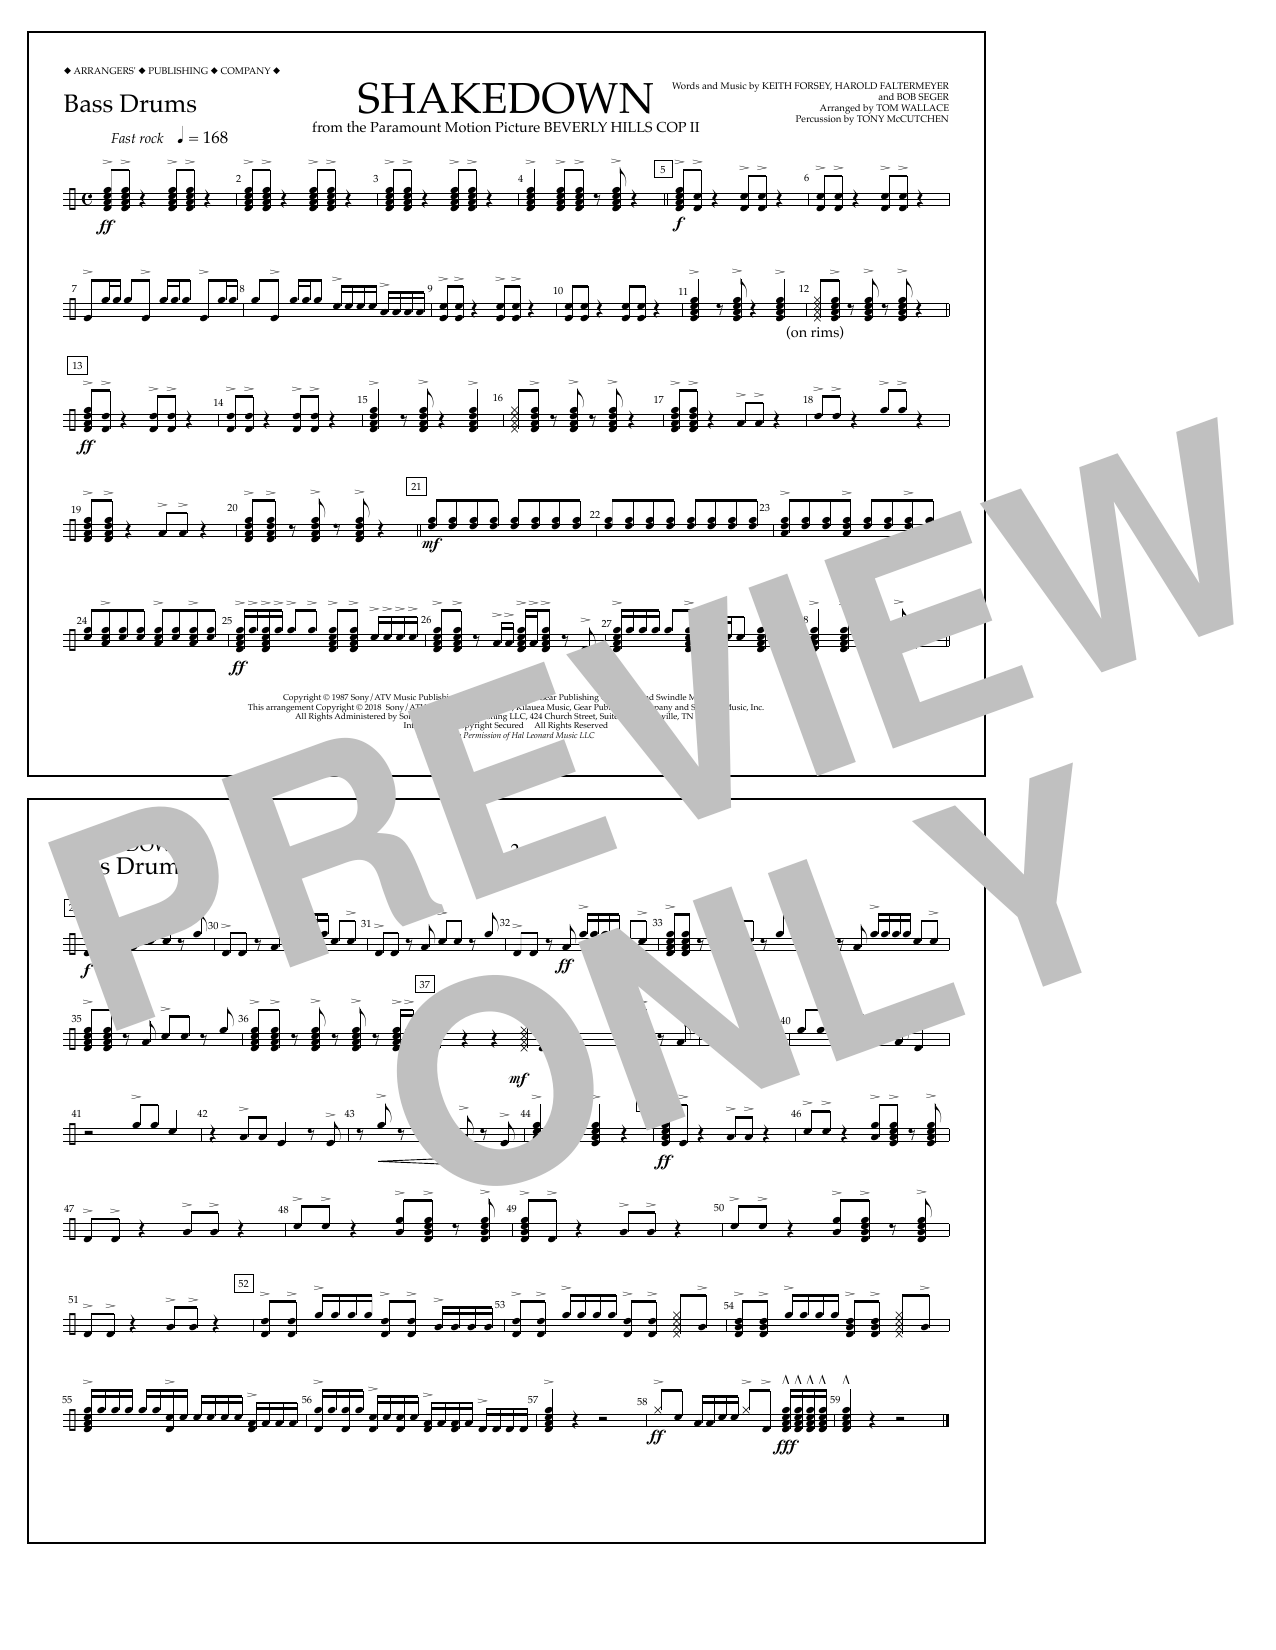 Tom Wallace Shakedown - Bass Drums sheet music notes and chords. Download Printable PDF.